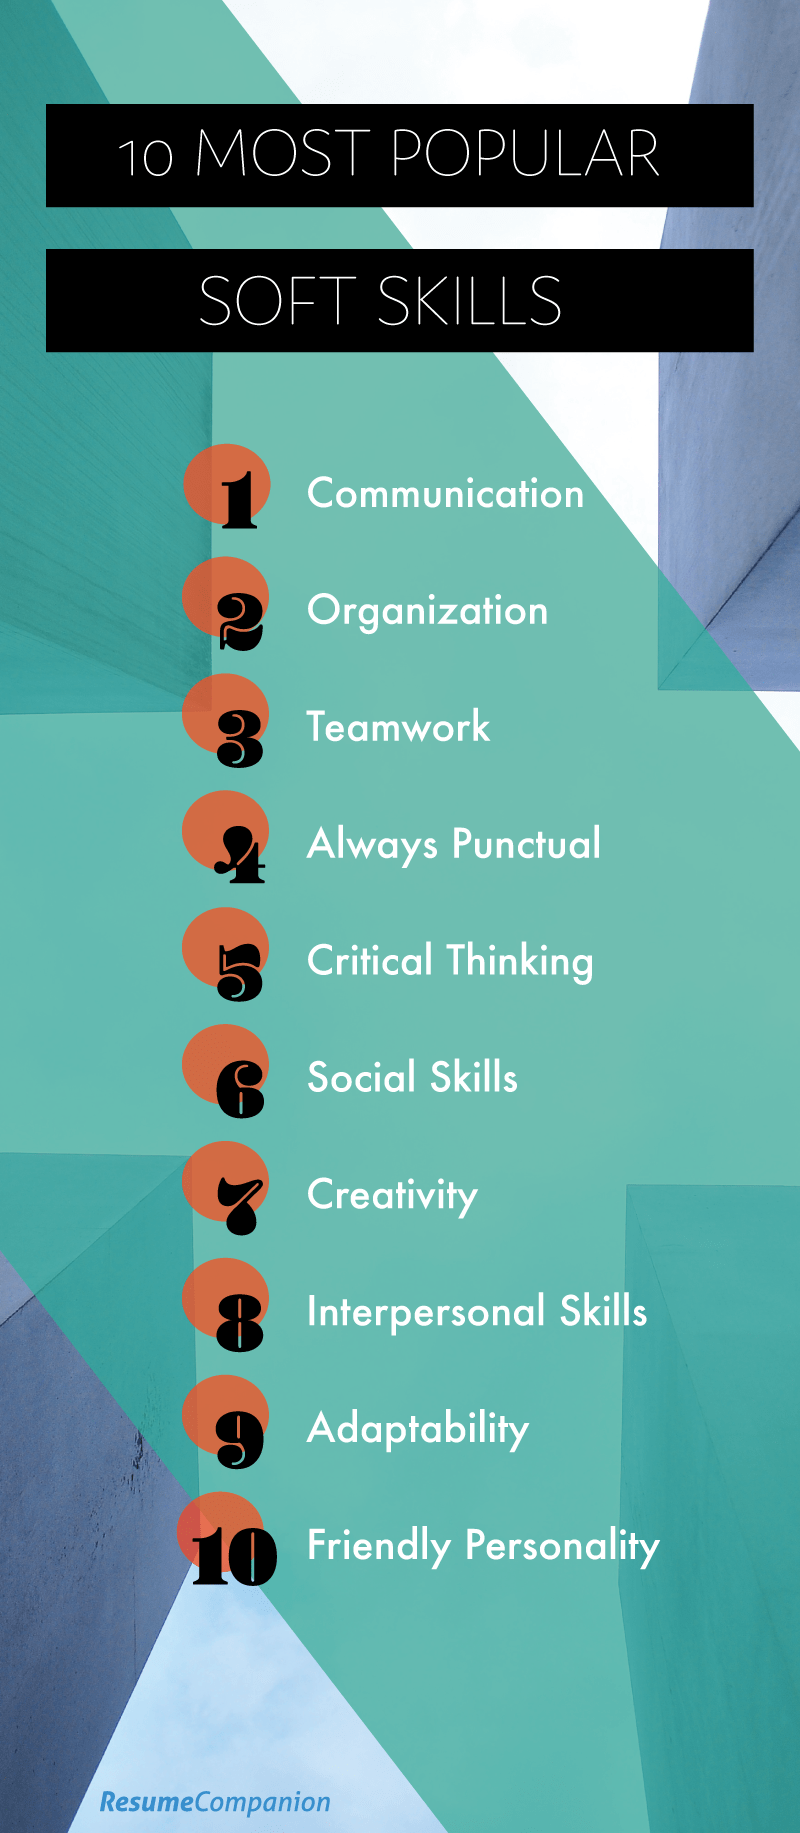 top 10 soft skills for a resume employers look for infographic - Resume Skills Section